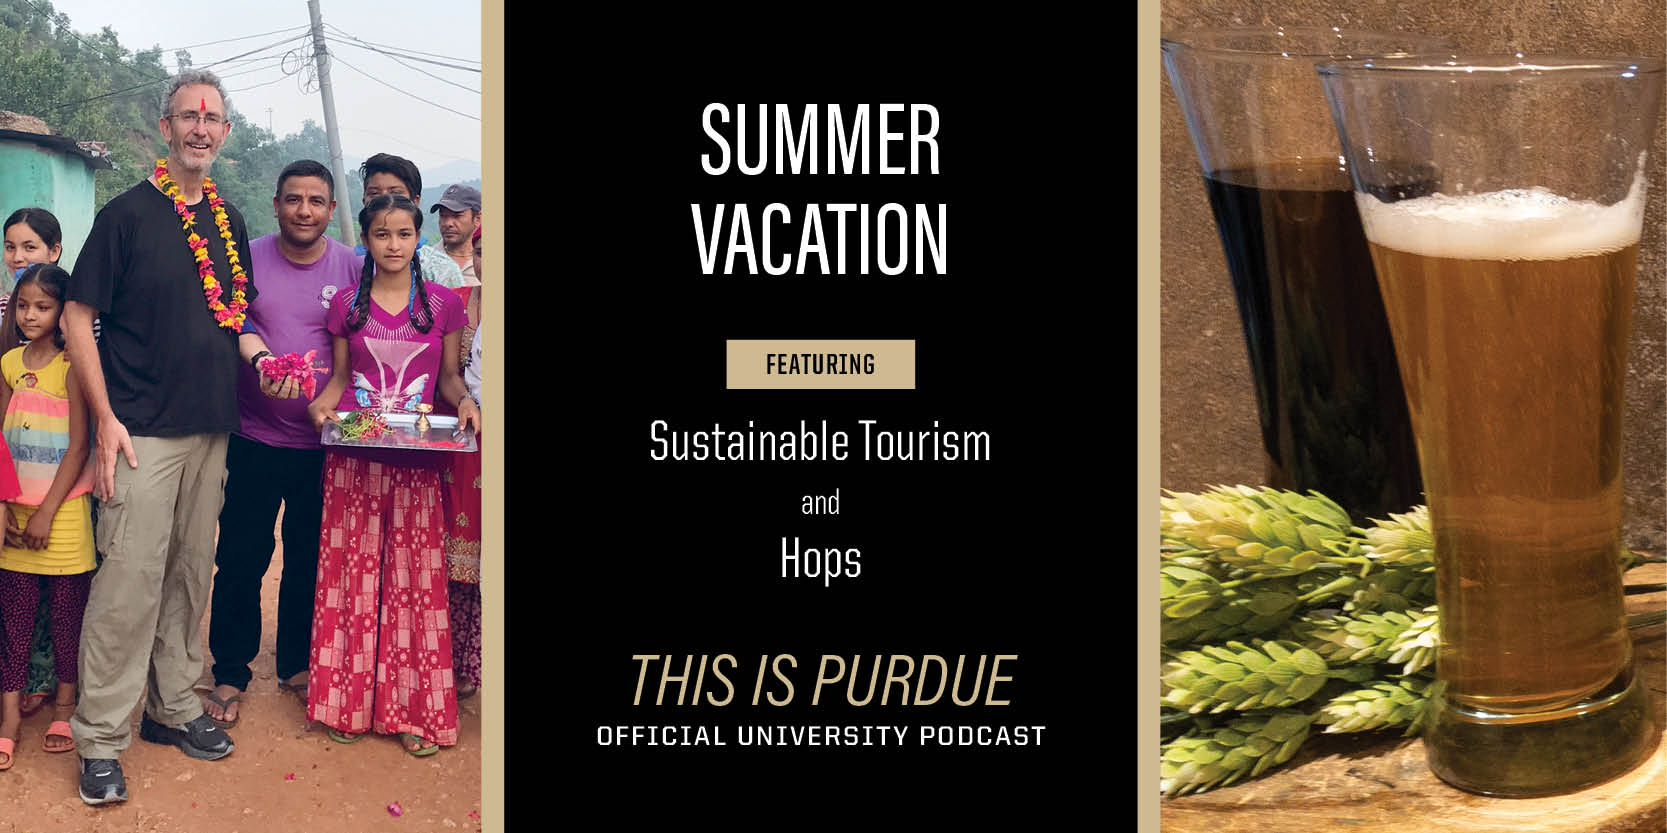 Summer Vacation featuring sustainable tourism and hops